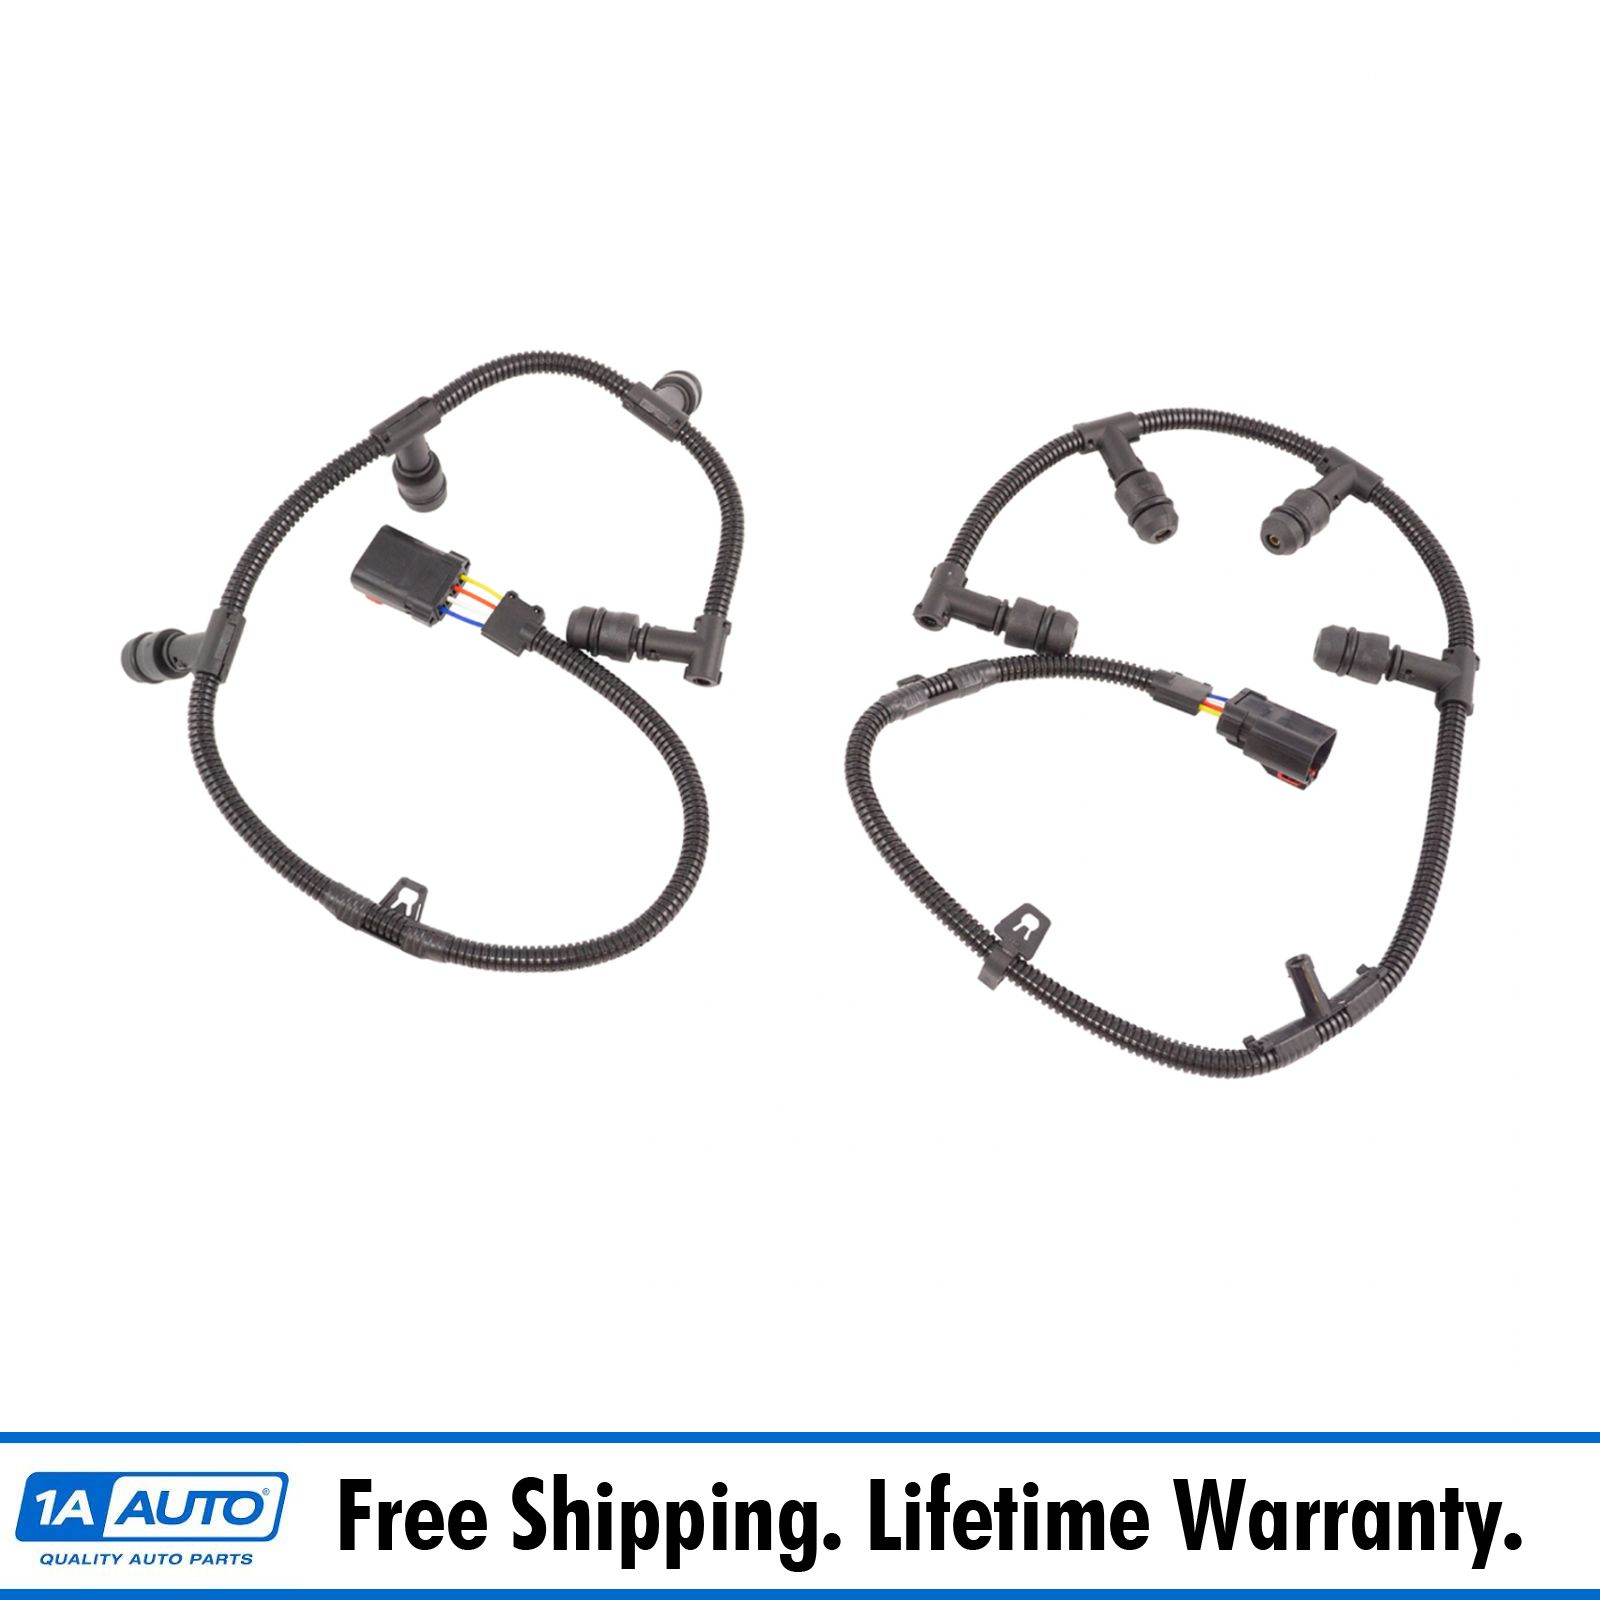 hight resolution of diesel glow plug wire harness left right pair with tool for 6 0l powerstroke